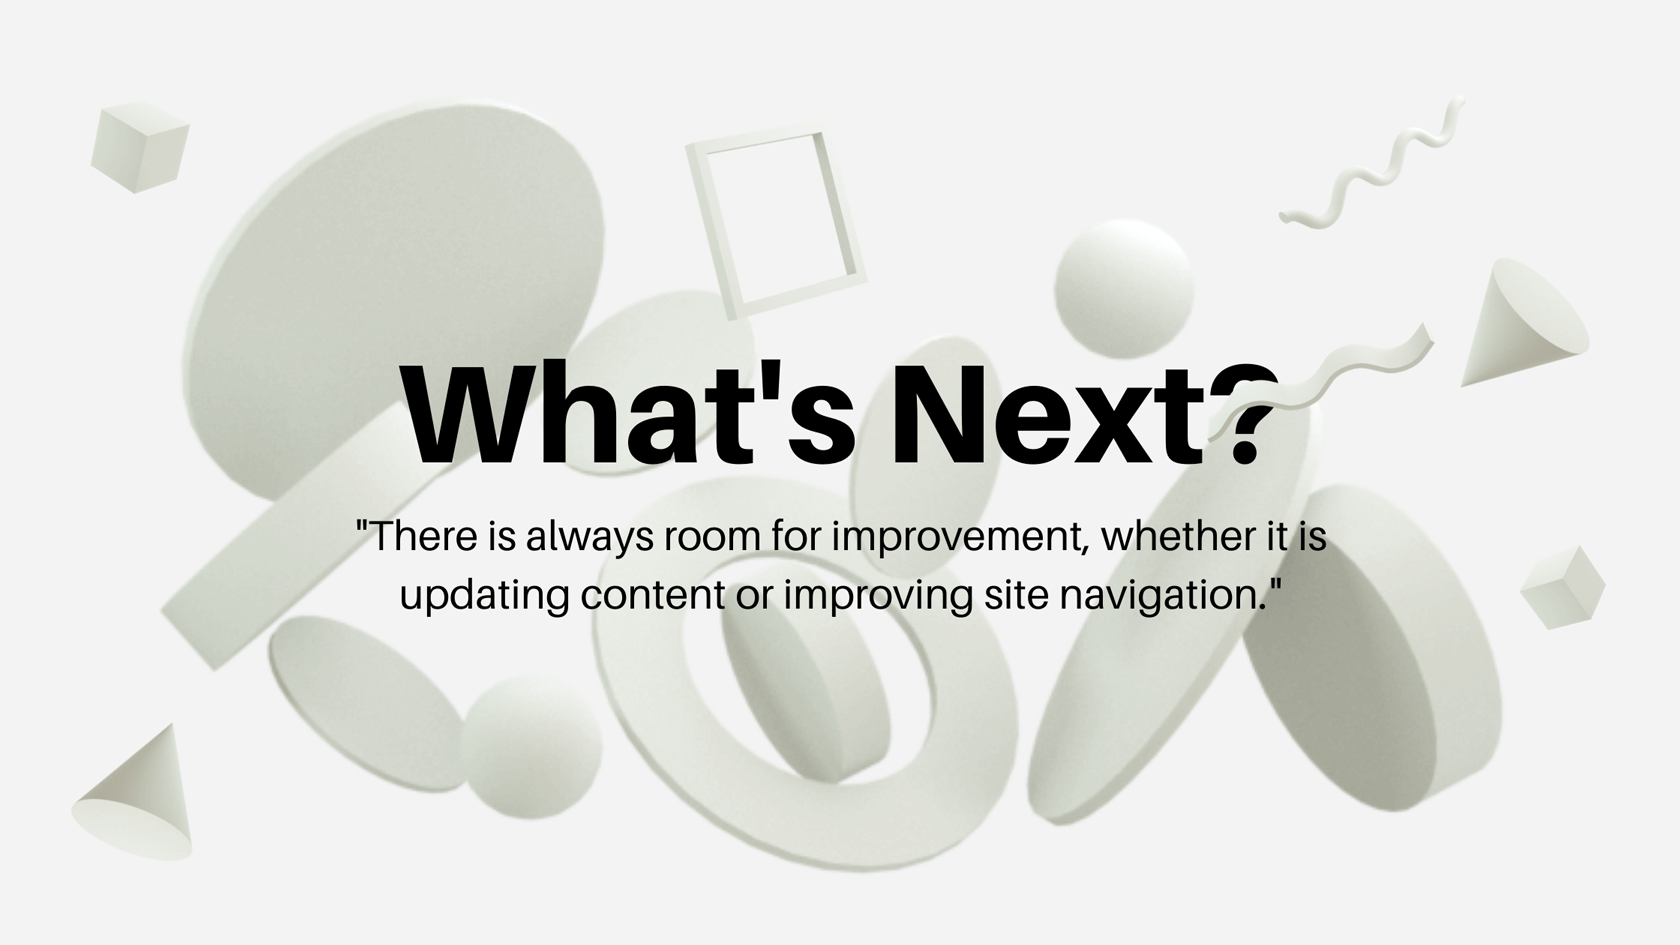 What's next for your website?